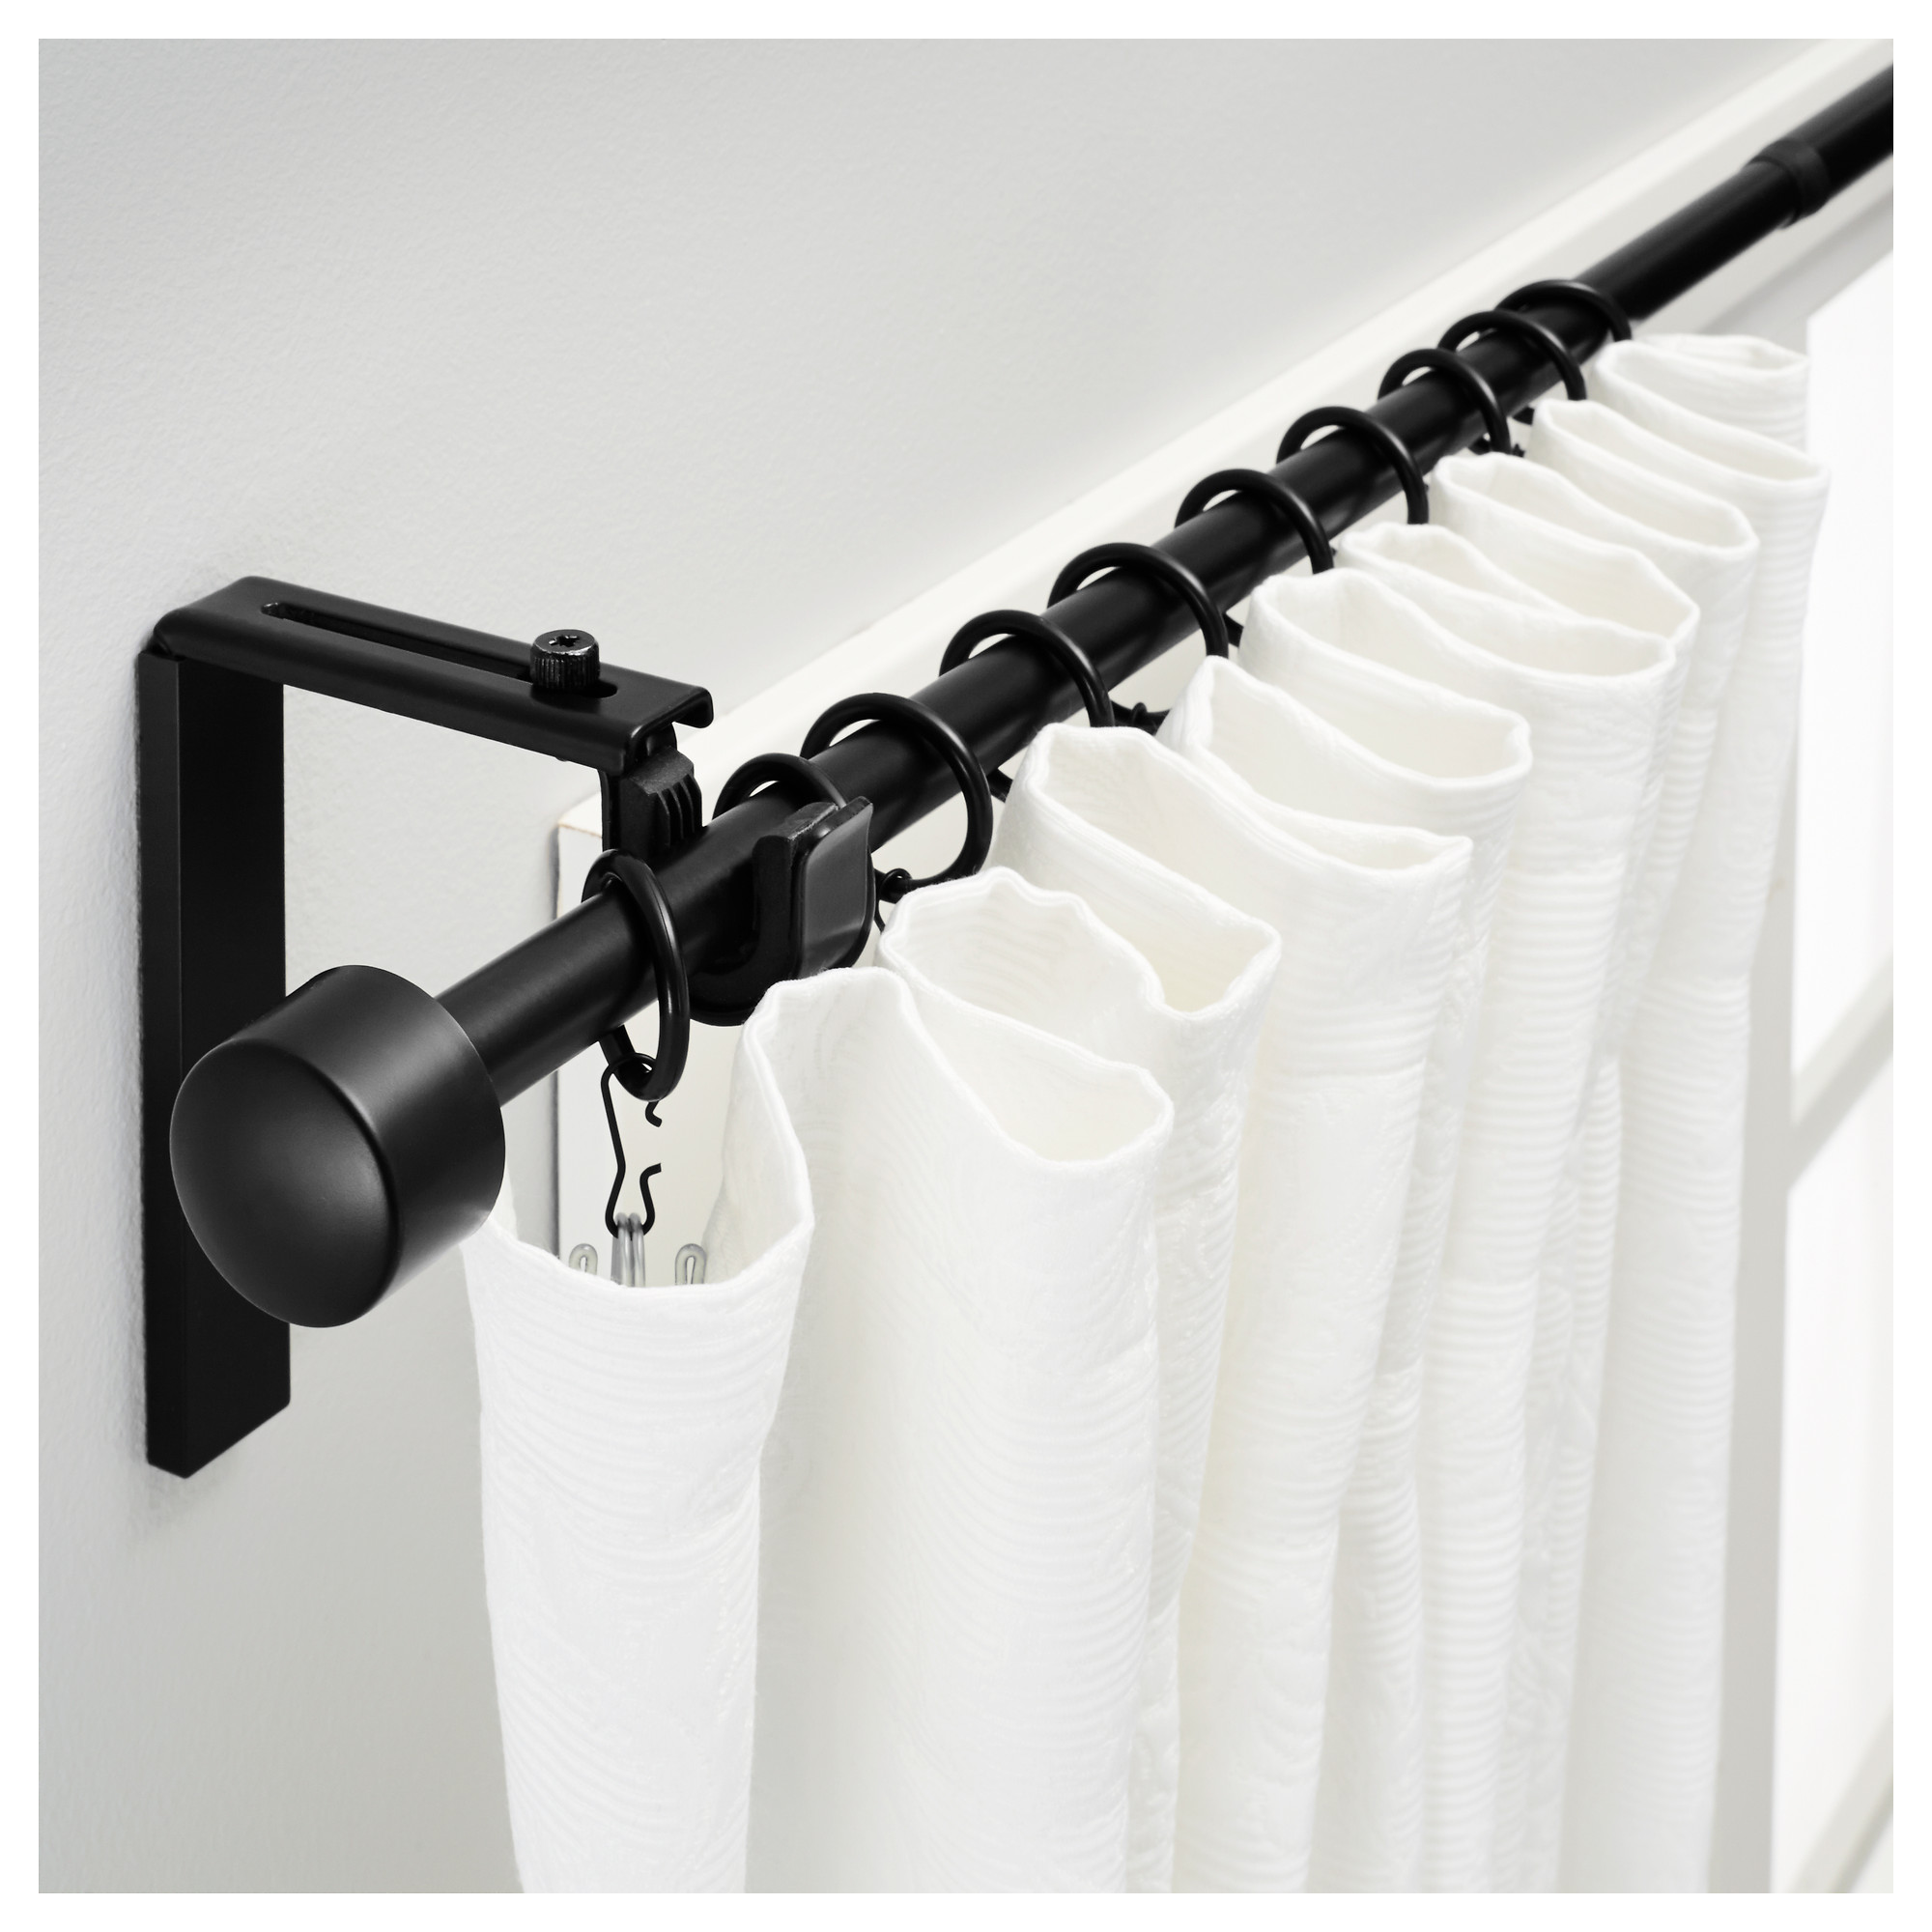 Ceiling mount shower curtain rods - Ceiling Mount Shower Curtain Rods Ceiling Mount Shower Curtain Rods Ceiling Mount Curtain Rods With